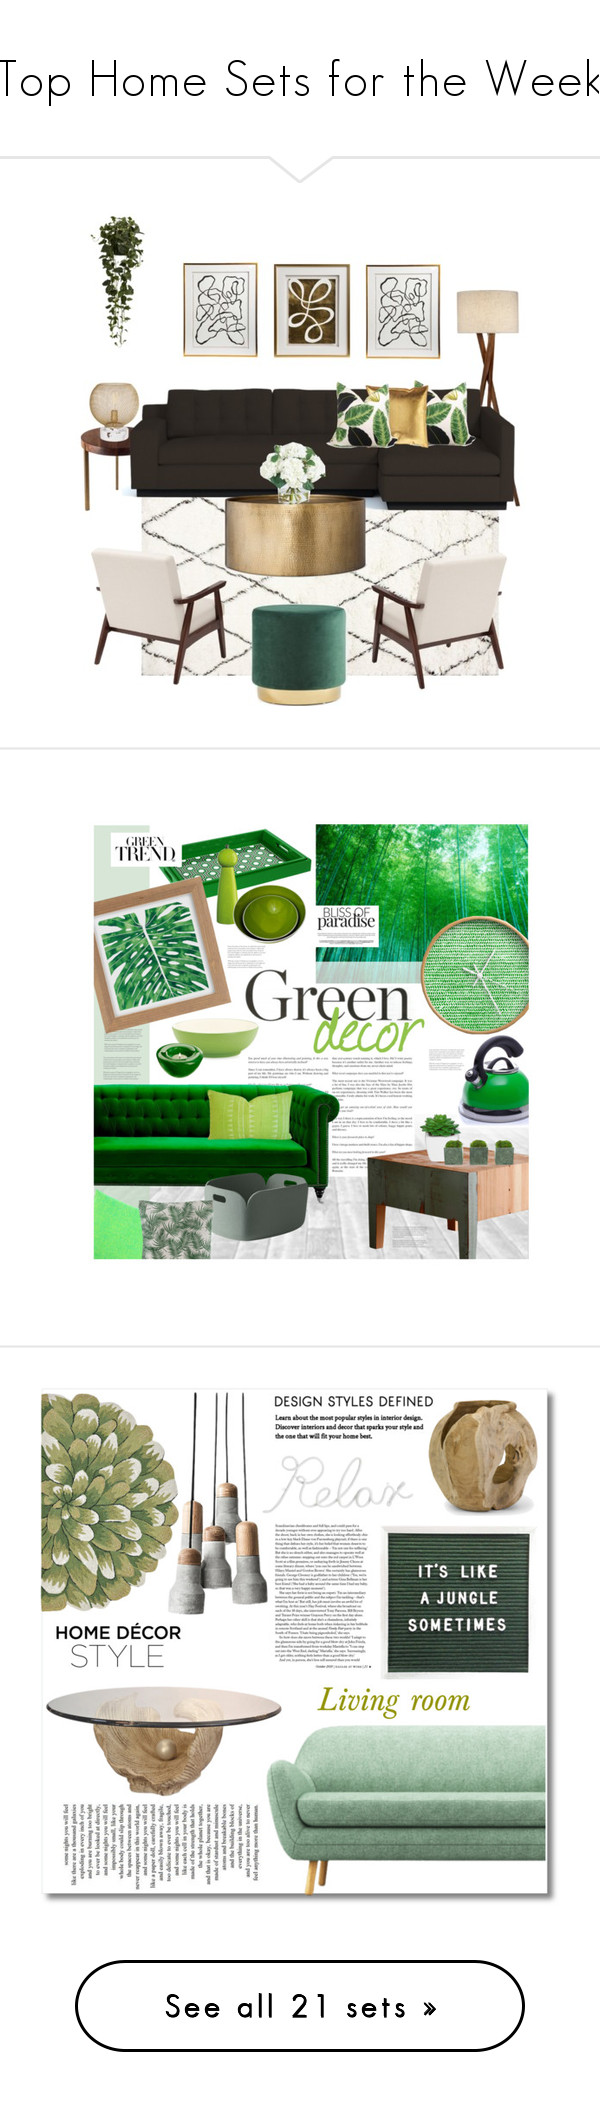 Threshold home decor shop for threshold home decor on polyvore -  Top Home Sets For The Week By Polyvore Liked On Polyvore Featuring Interior